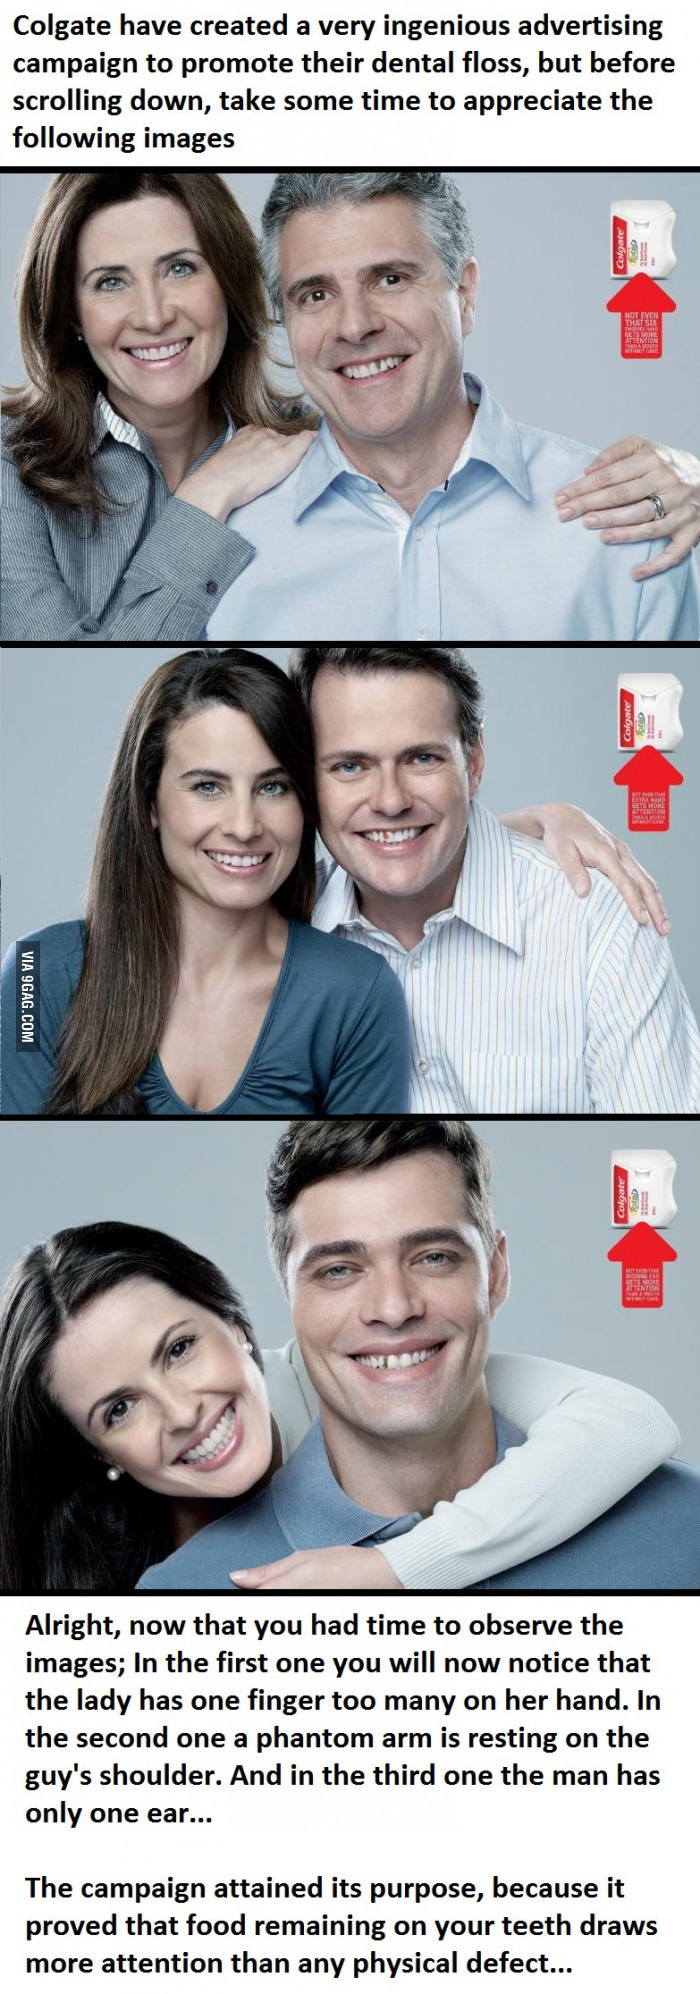 colgate dental floss ingenious advertise